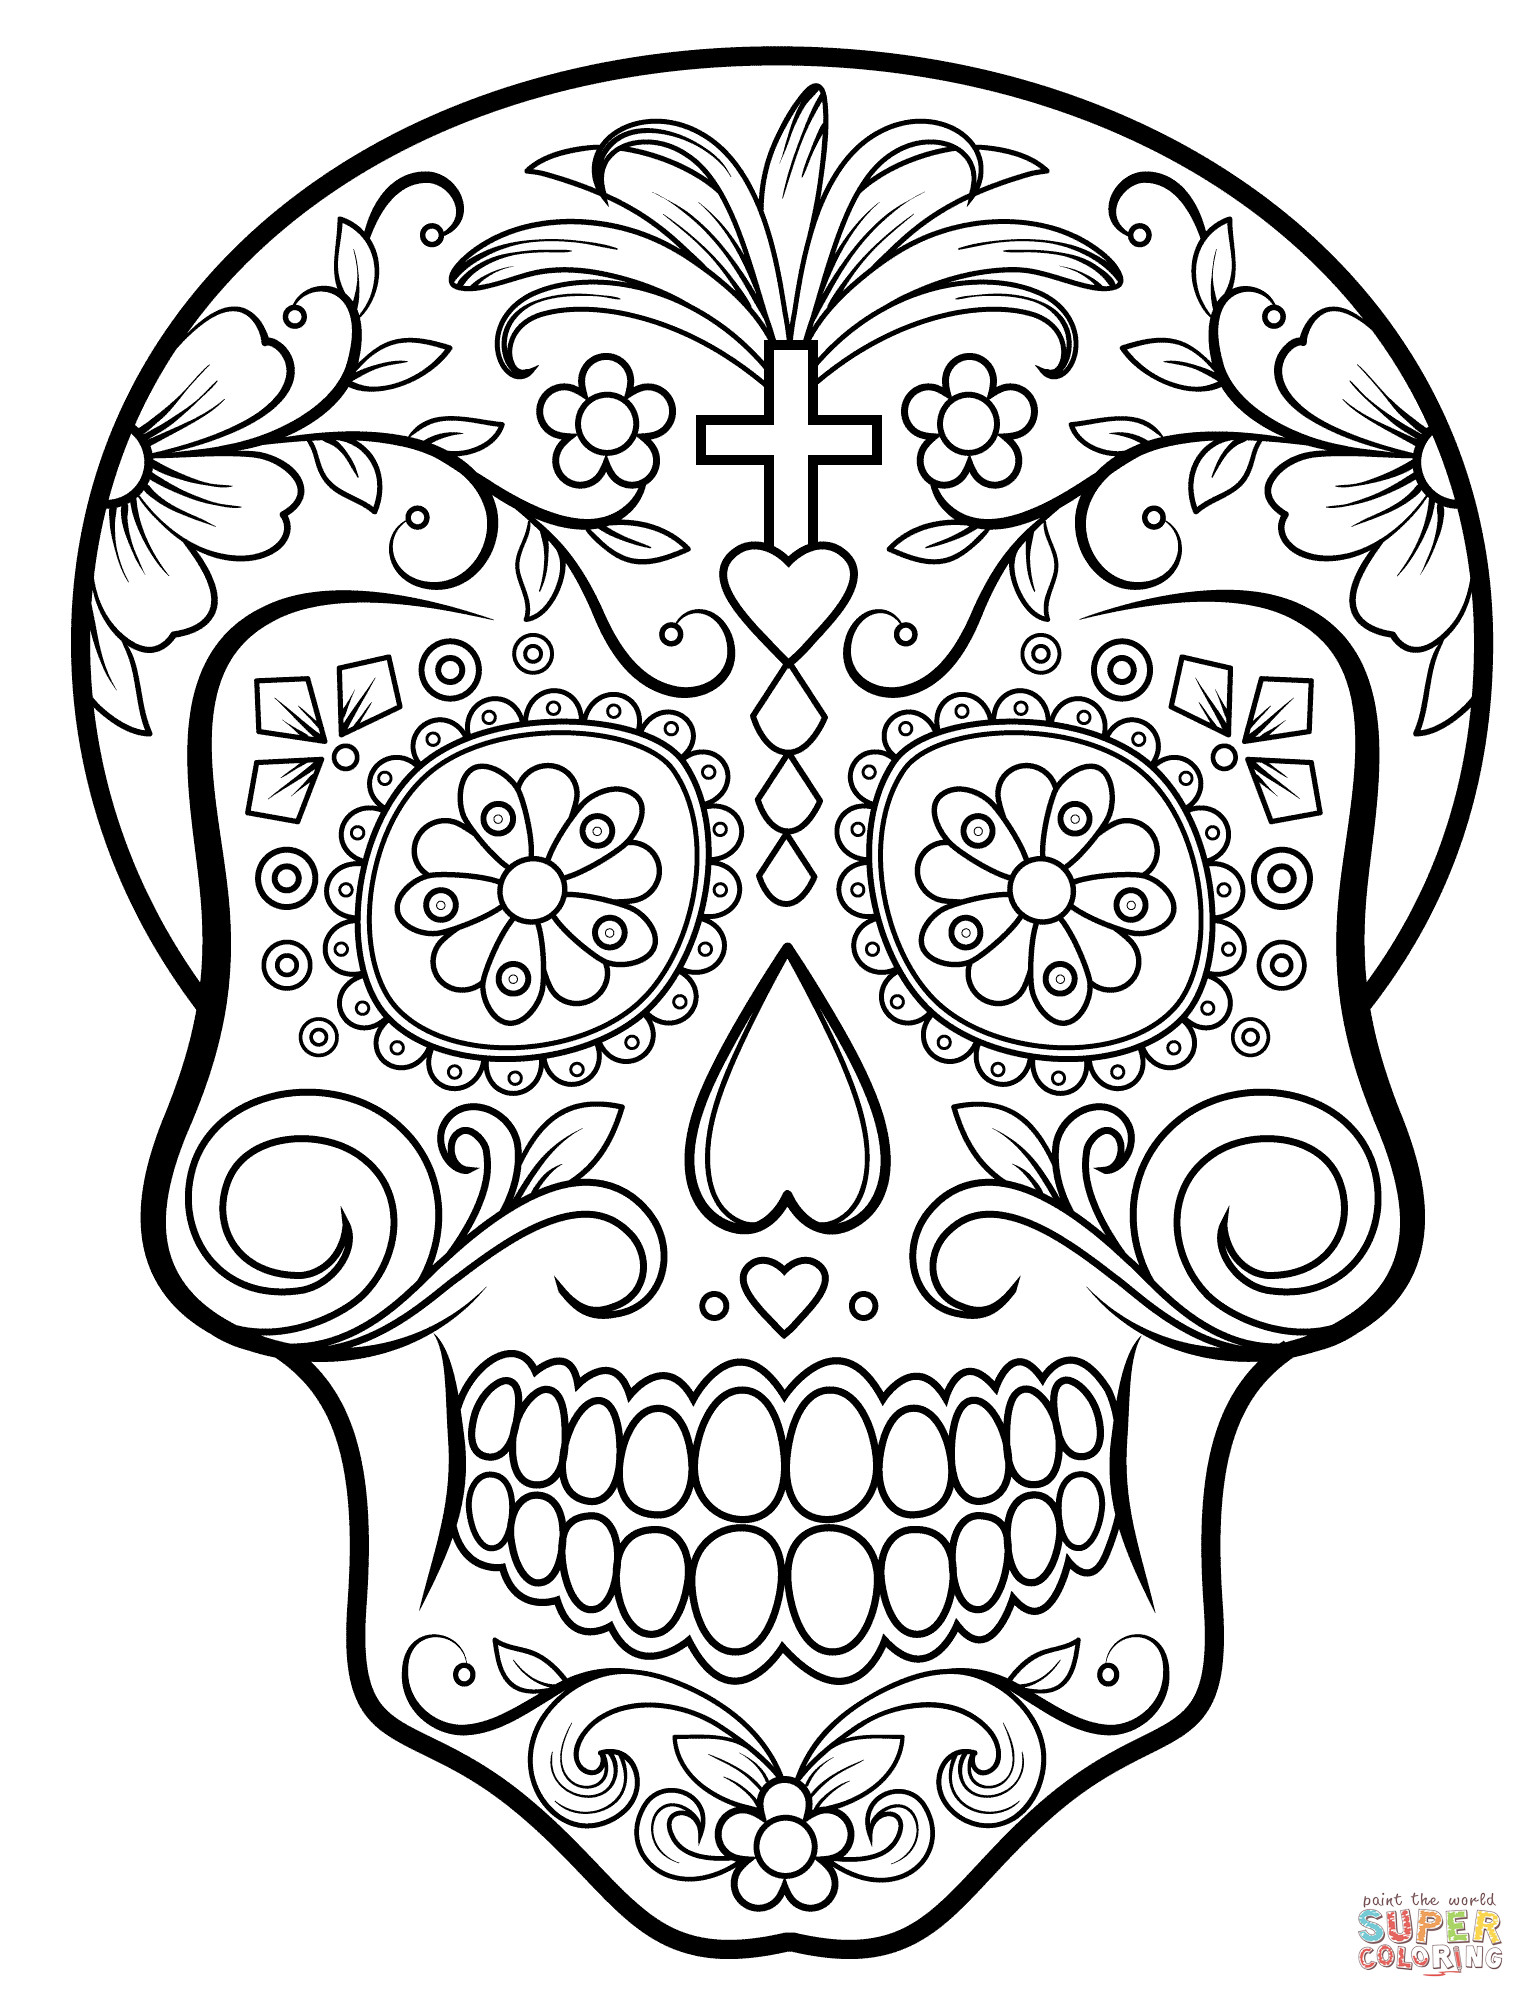 Printable Sugar Skulls Coloring Pages  Sugar Skull Coloring Pages Bestofcoloring